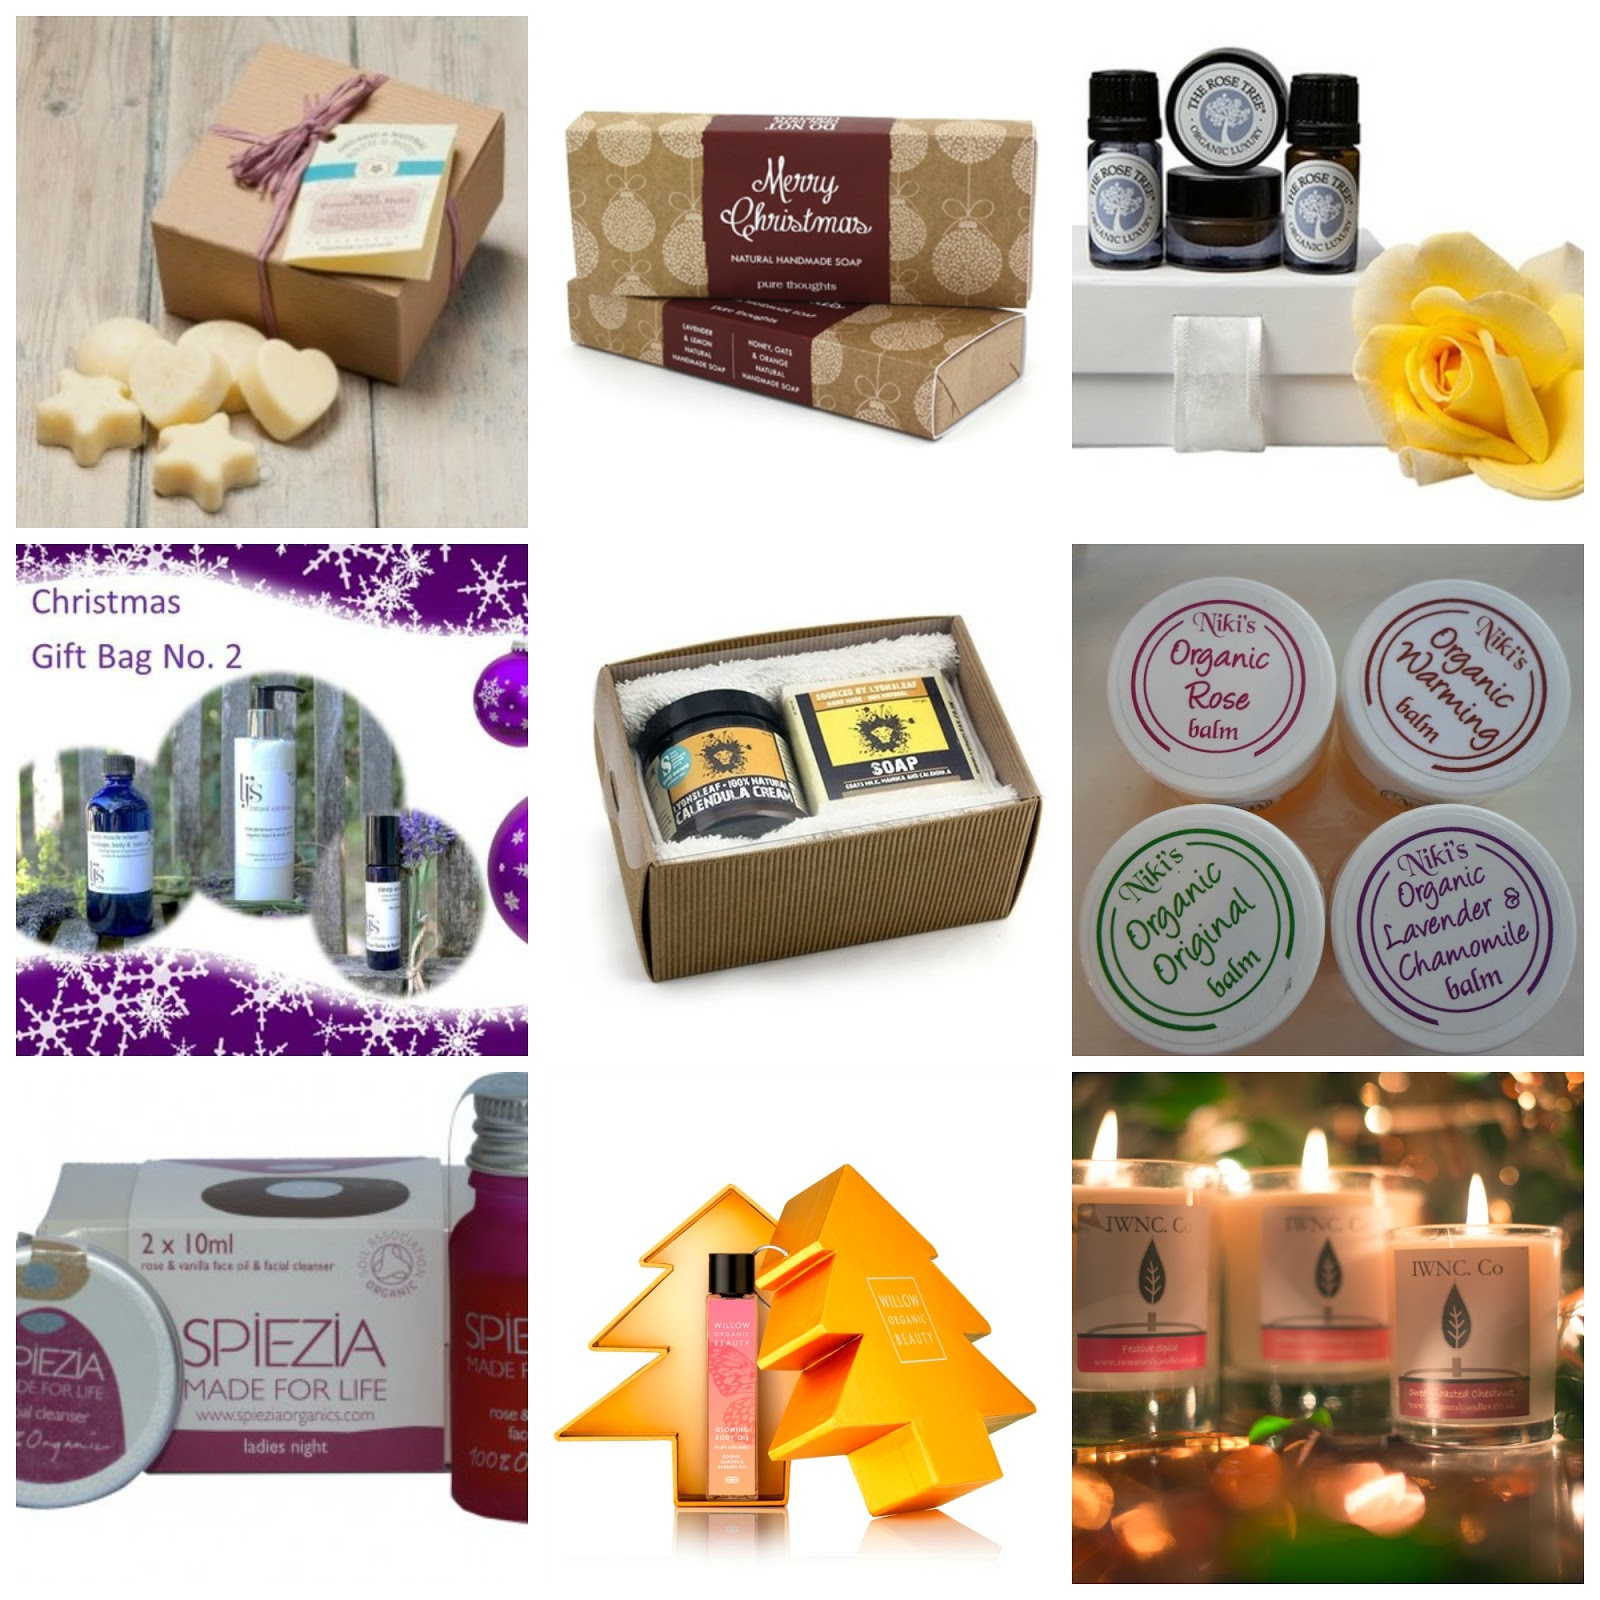 Sugarpuffish Natural & Organic Skincare Christmas Gift Ideas 2014